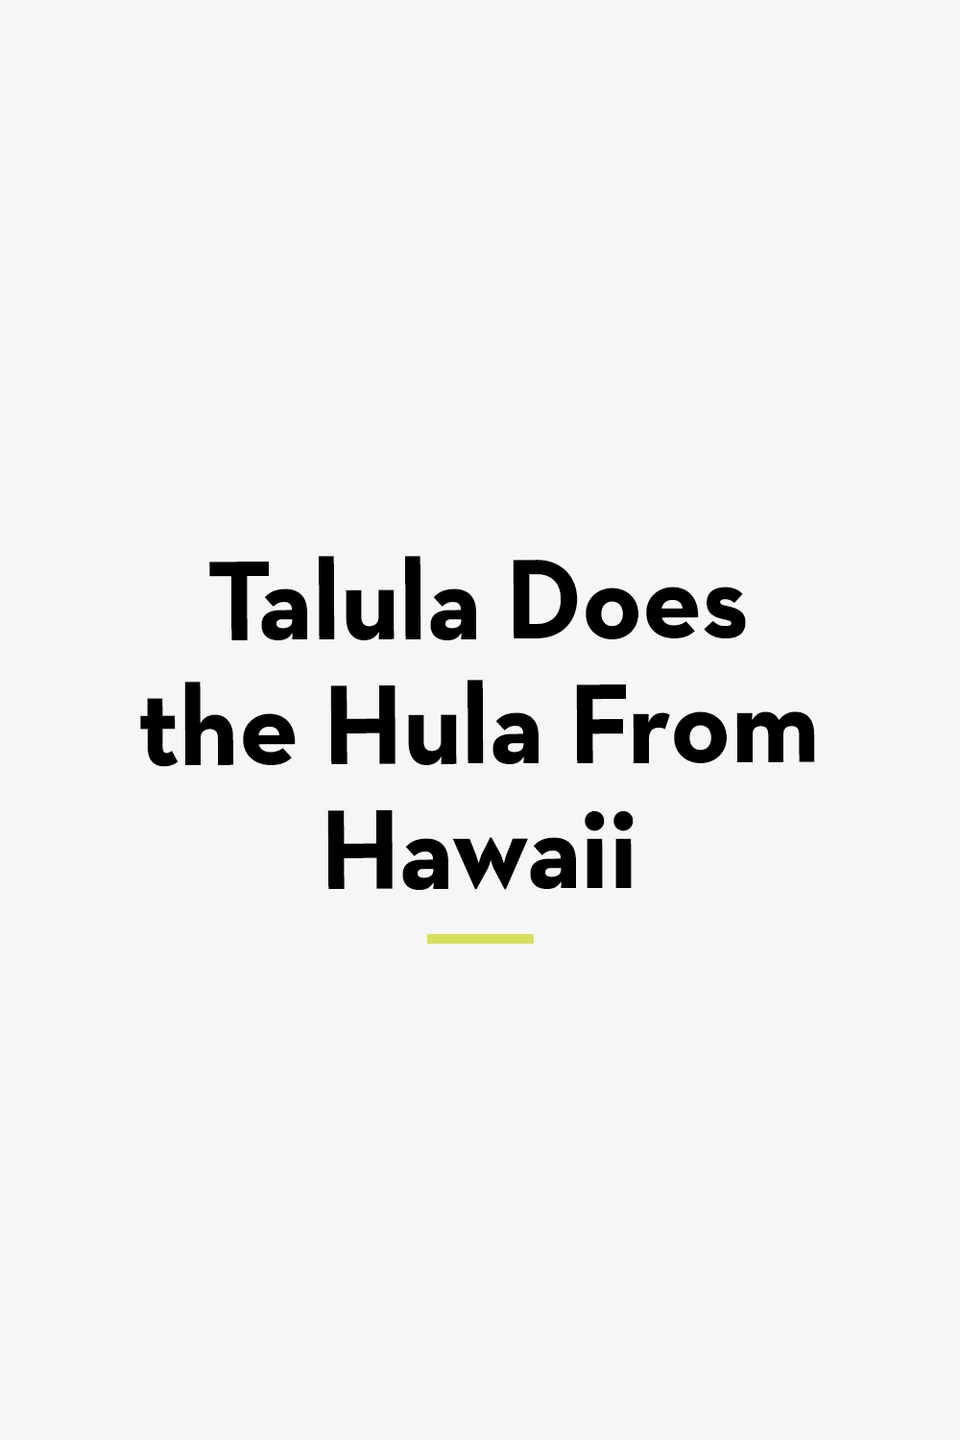 """<p>Yes, that whole thing was one name — in New Zealand, no less. When Talula Does the Hula From Hawaii turned 9 and complained about her name in a family court hearing, <a href=""""https://www.theguardian.com/lifeandstyle/2008/jul/24/familyandrelationships.newzealand"""" rel=""""nofollow noopener"""" target=""""_blank"""" data-ylk=""""slk:her parents actually lost custody"""" class=""""link rapid-noclick-resp"""">her parents actually lost custody</a> of her because the judge was """"so profoundly concerned about the very poor judgment."""" After the guardianship arrangement was altered, the girl was allowed to legally change her name.</p>"""